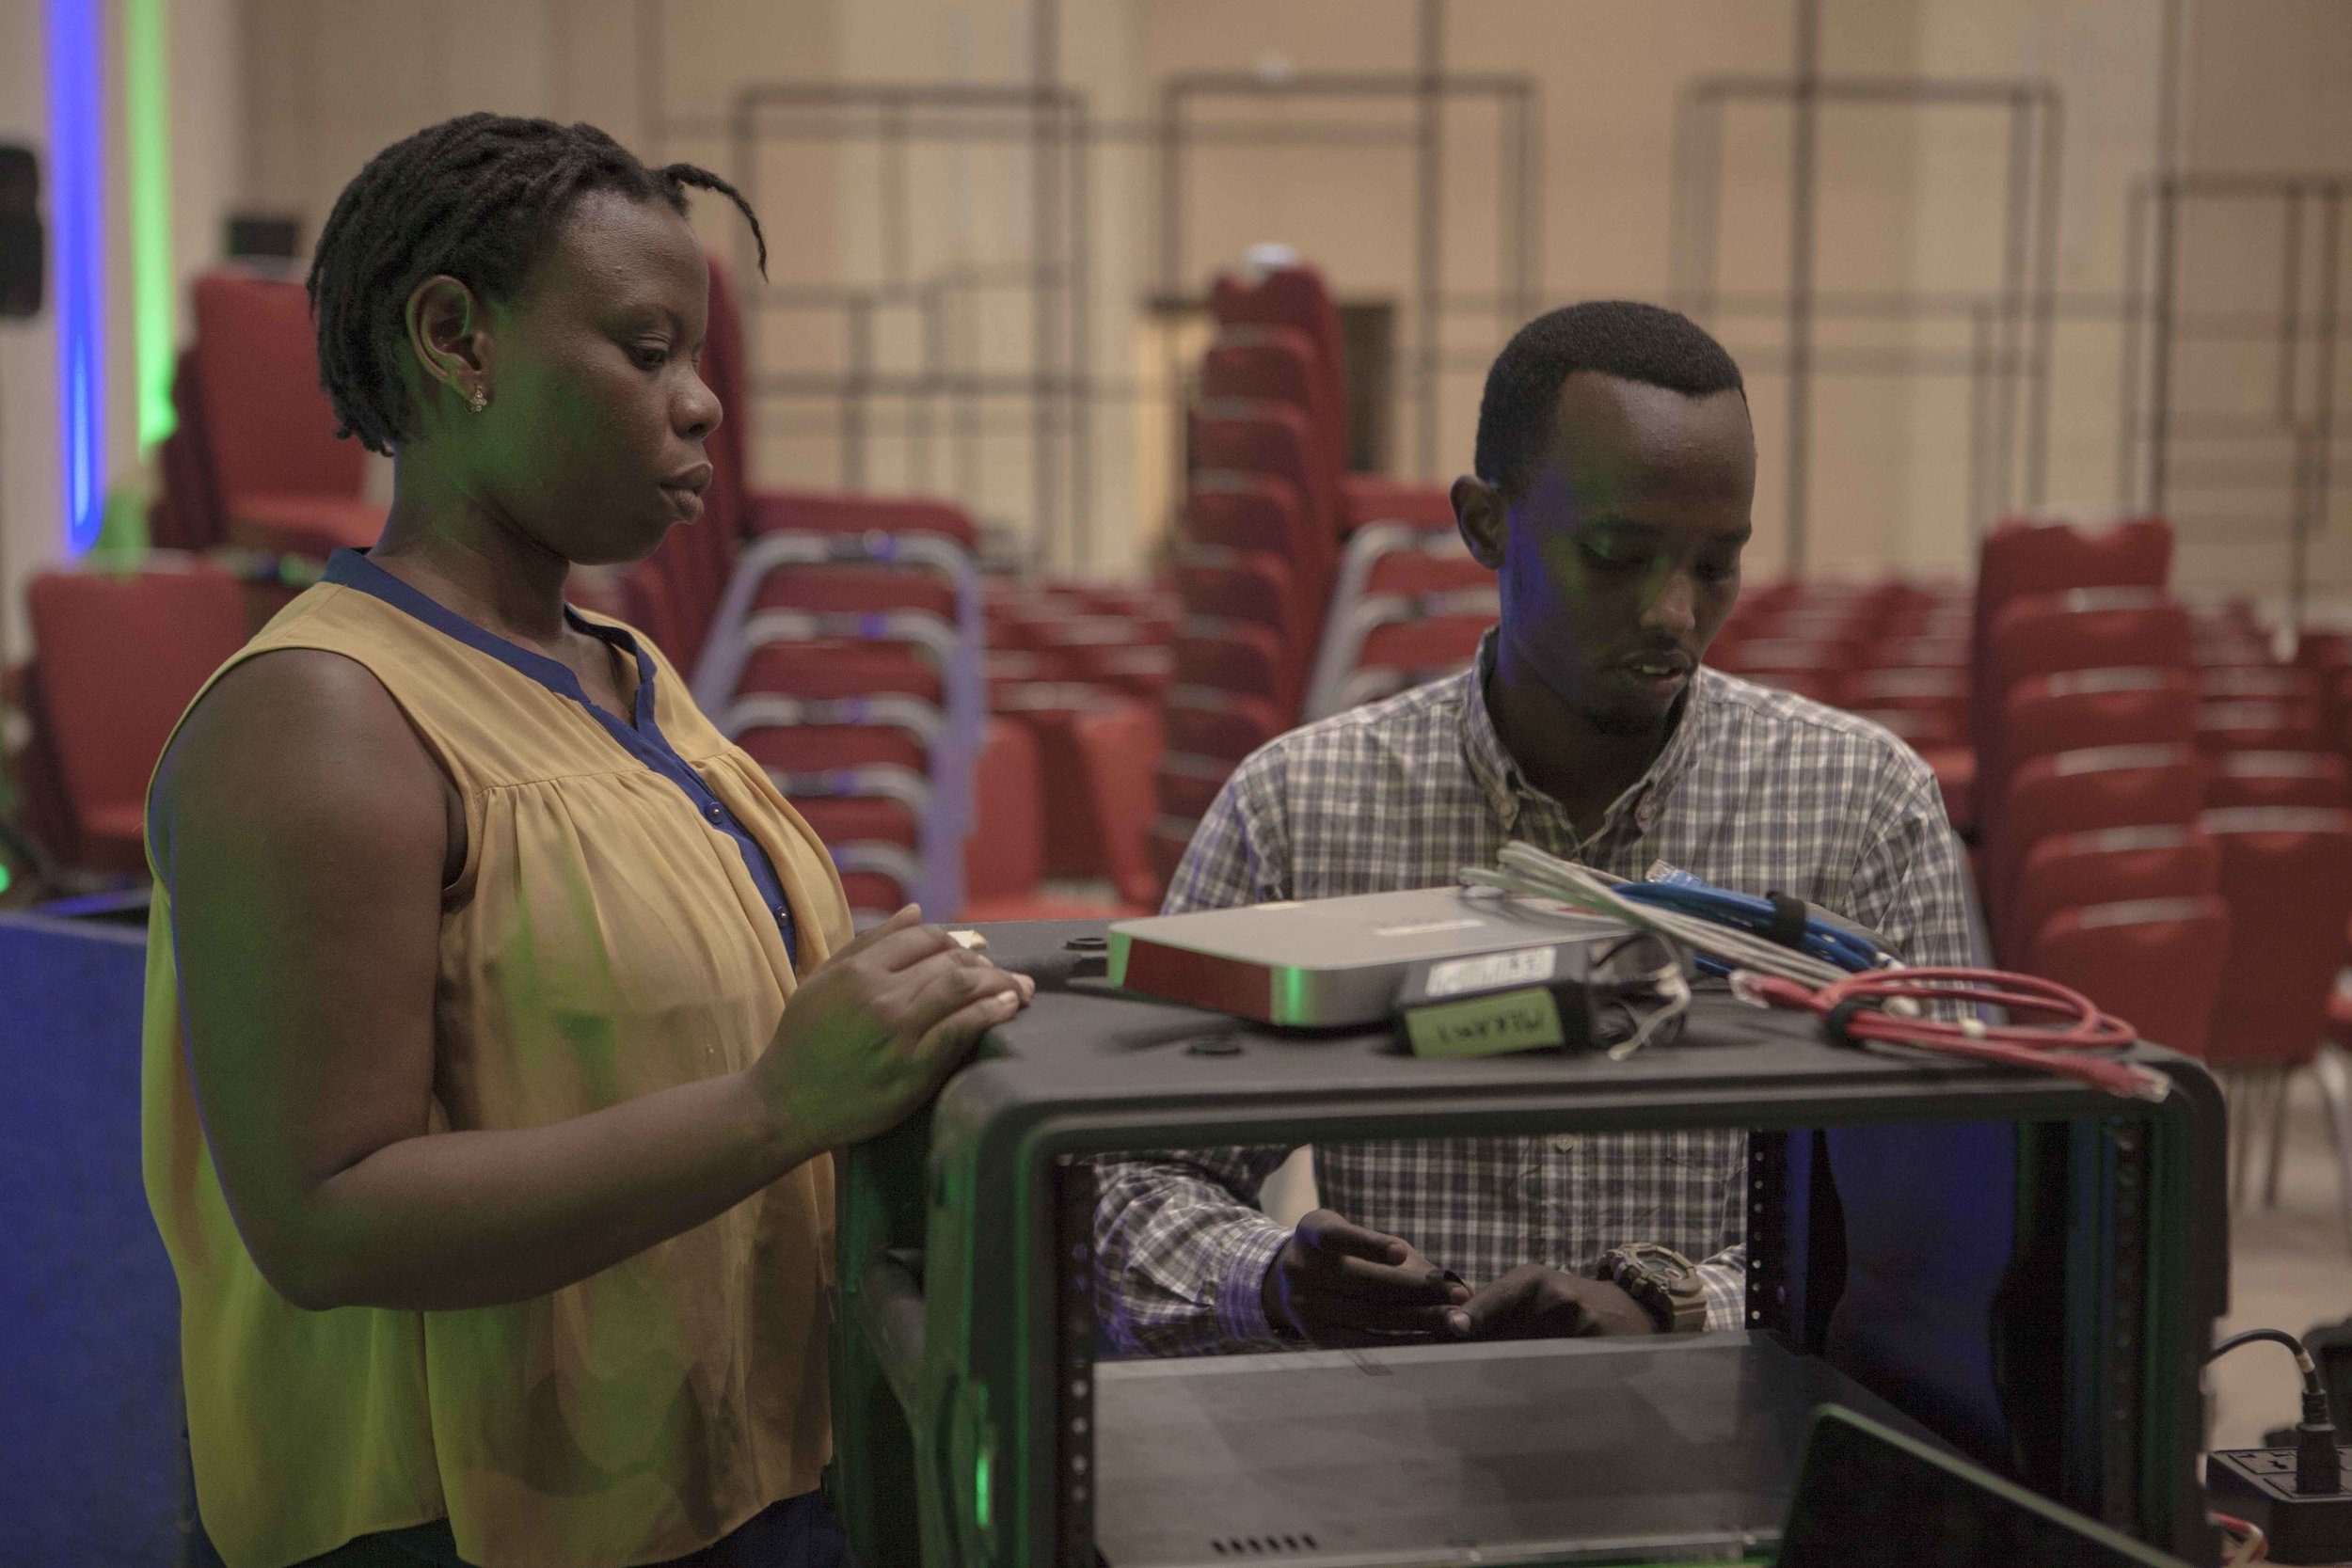 Joselyne Dusabe and Alan Tuyikunde setting up the Cisco Meraki and hardware encoder Elementals that will be used for live streaming purposes